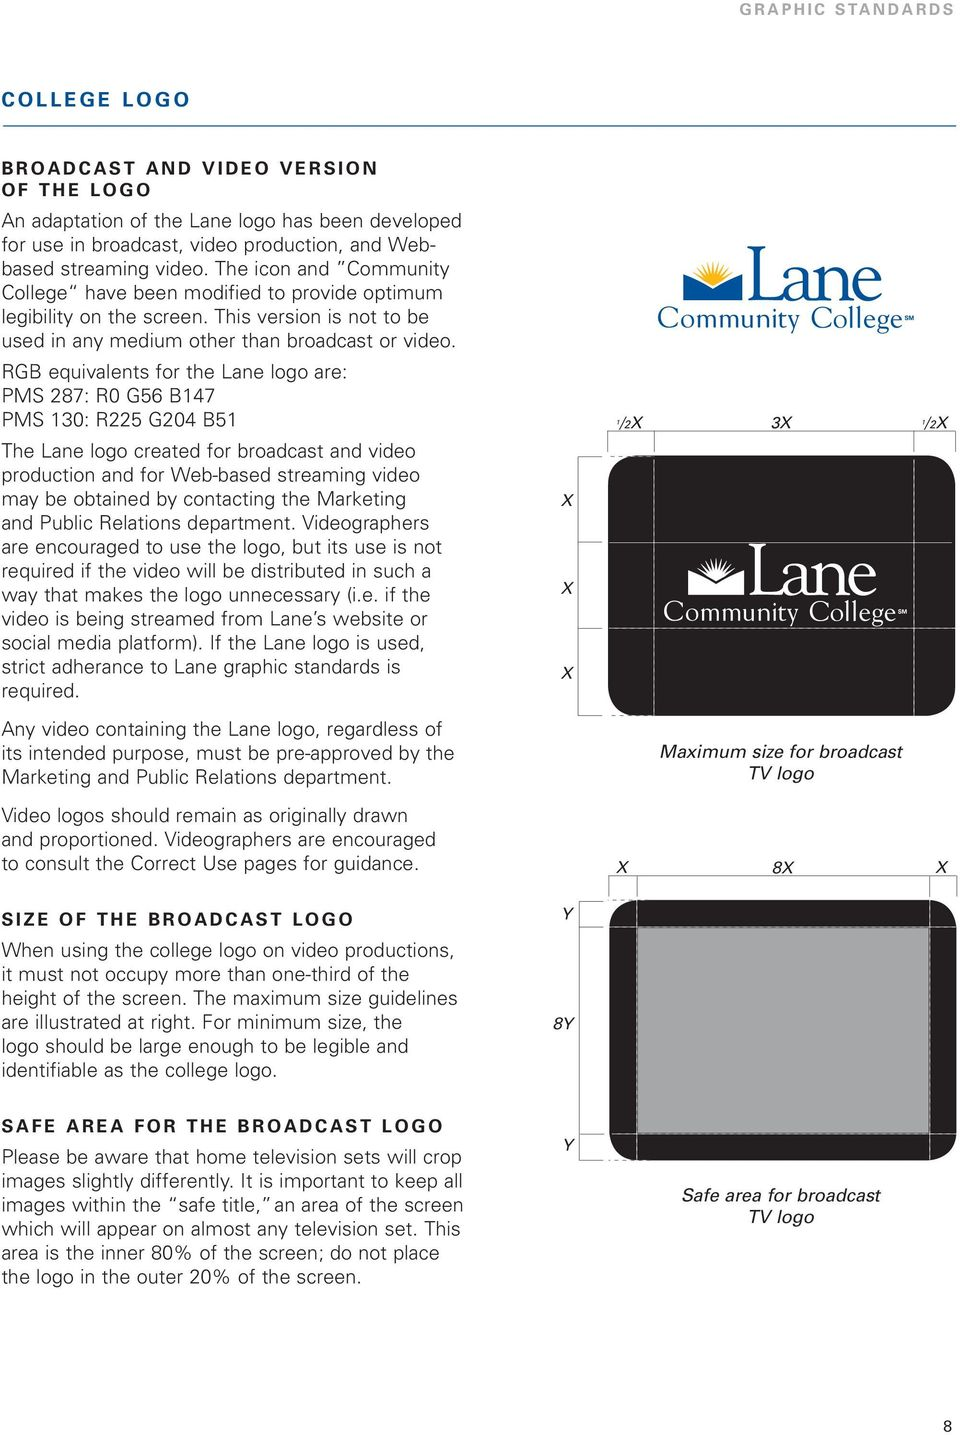 RGB equivalents for the Lane logo are: PMS 287: R0 G56 B147 PMS 130: R225 G204 B51 The Lane logo created for broadcast and video production and for Web-based streaming video may be obtained by